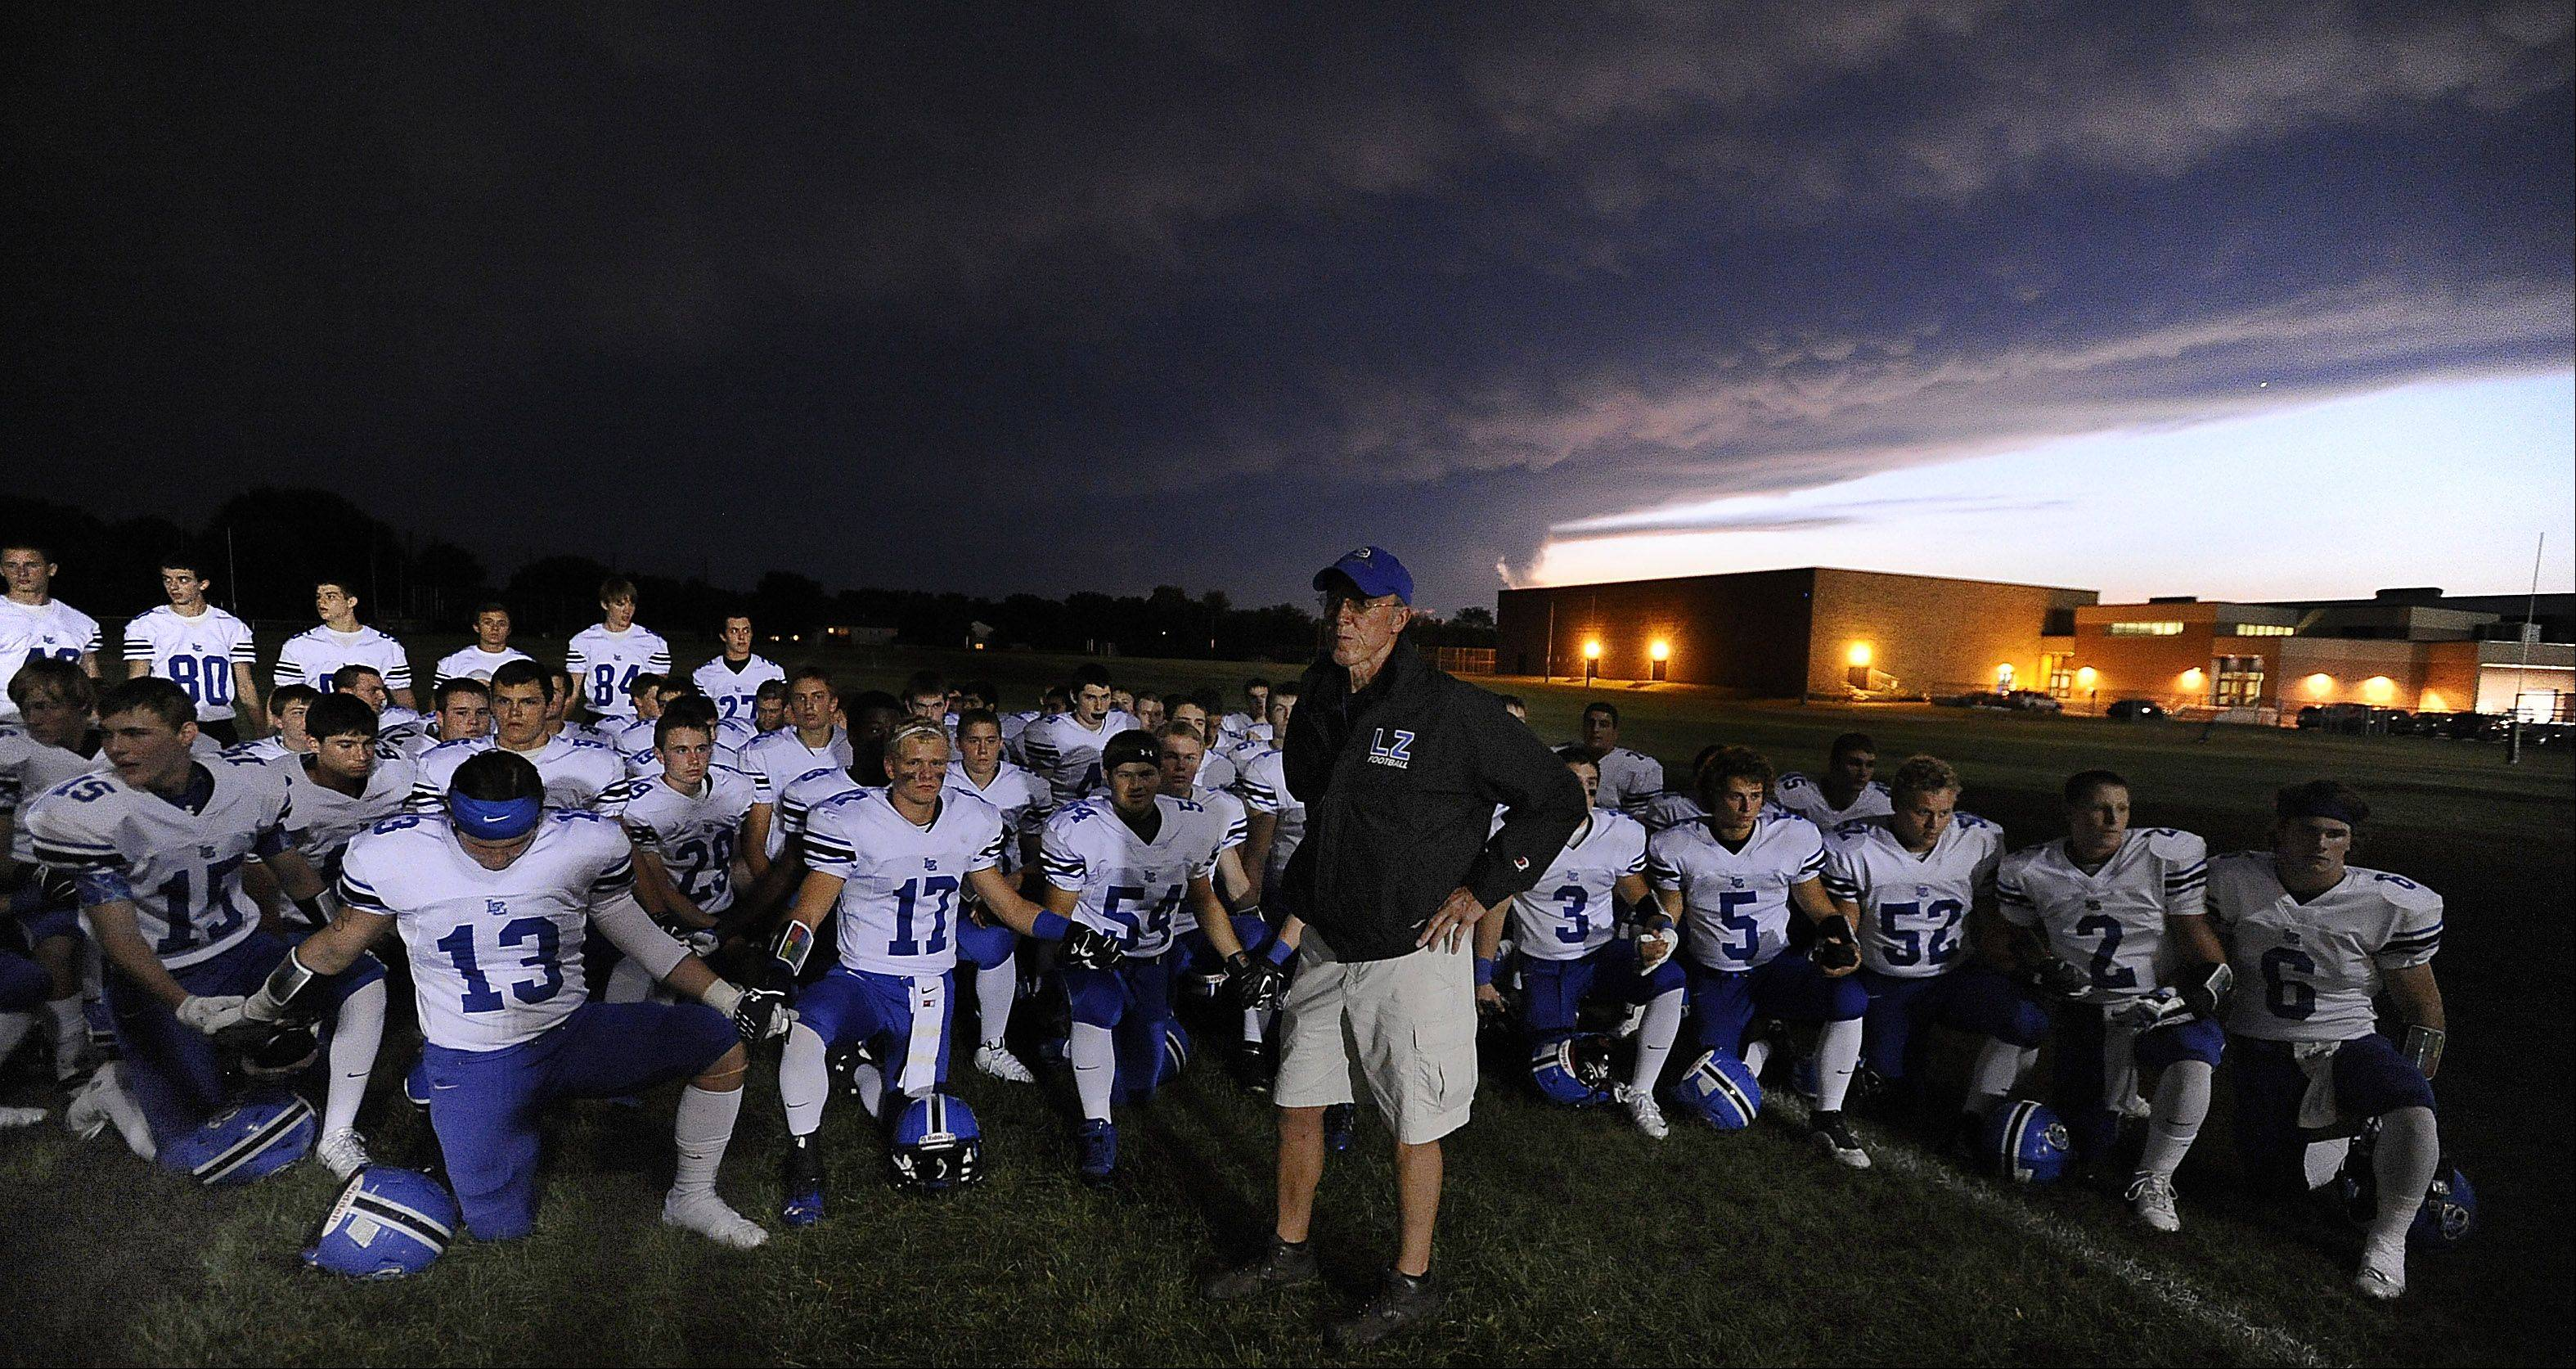 Lake Zurich's head coach Dave Proffitt stands with his players before the game.